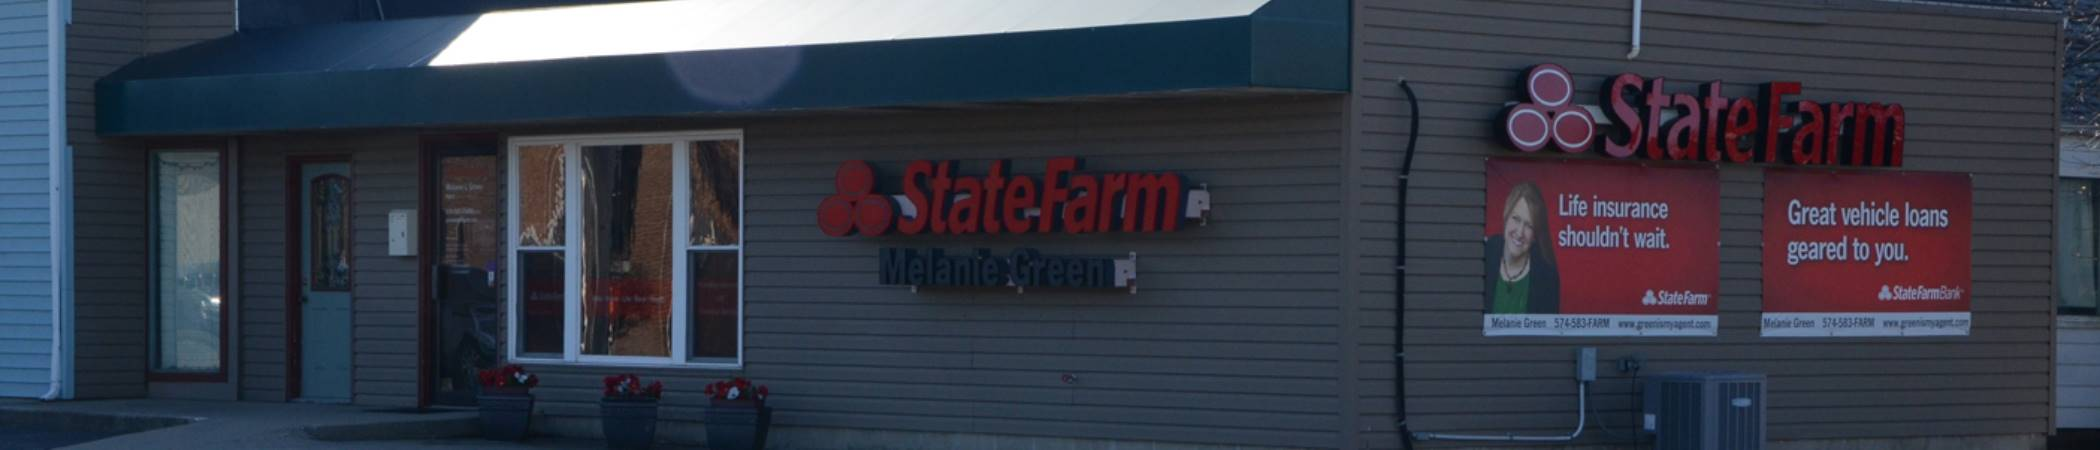 Melanie Green State Farm Insurance in Monticello, IN | Home, Auto Insurance & more